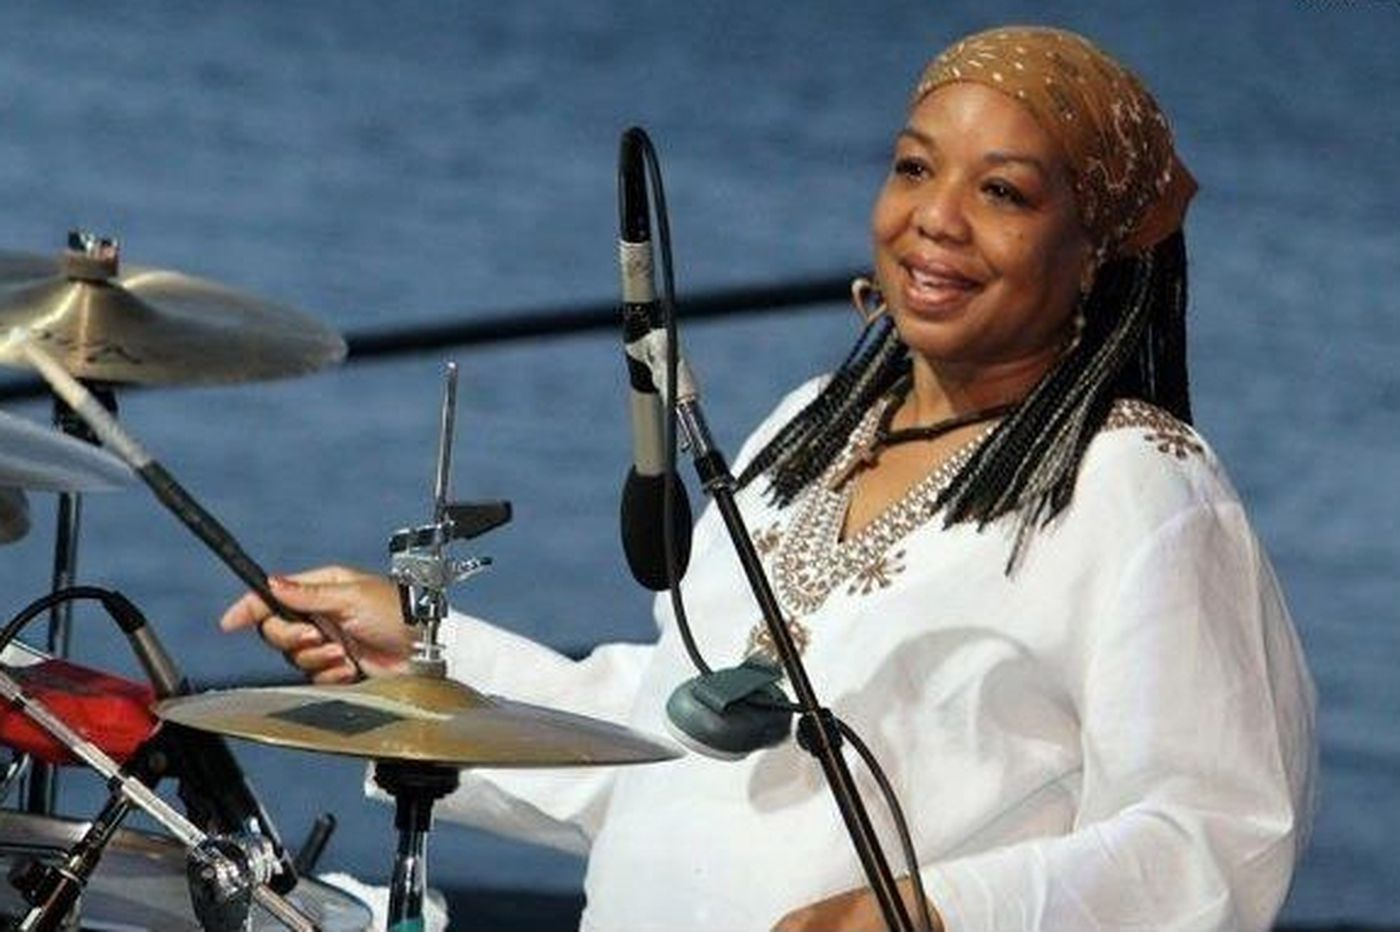 Lysa Dawn Robinson, 55, was a percussionist who performed with Billy Paul and others